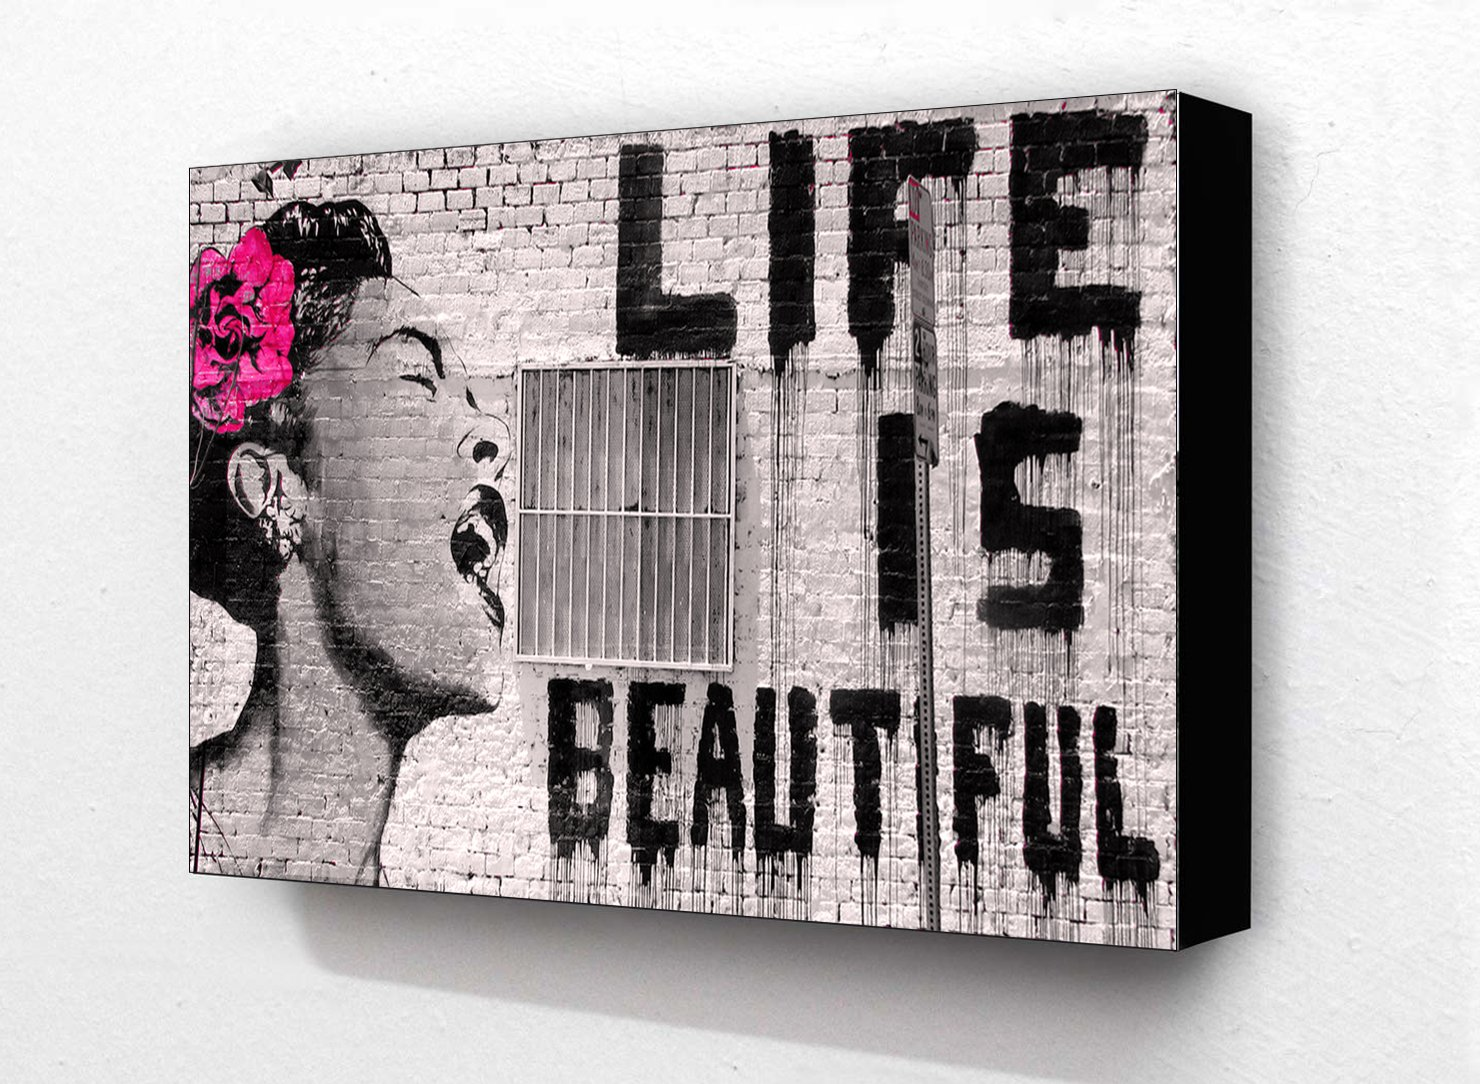 Banksy Life Is Beautiful 6 x 4 Inches Postcard Size Block Mounted Print Laminated Posters